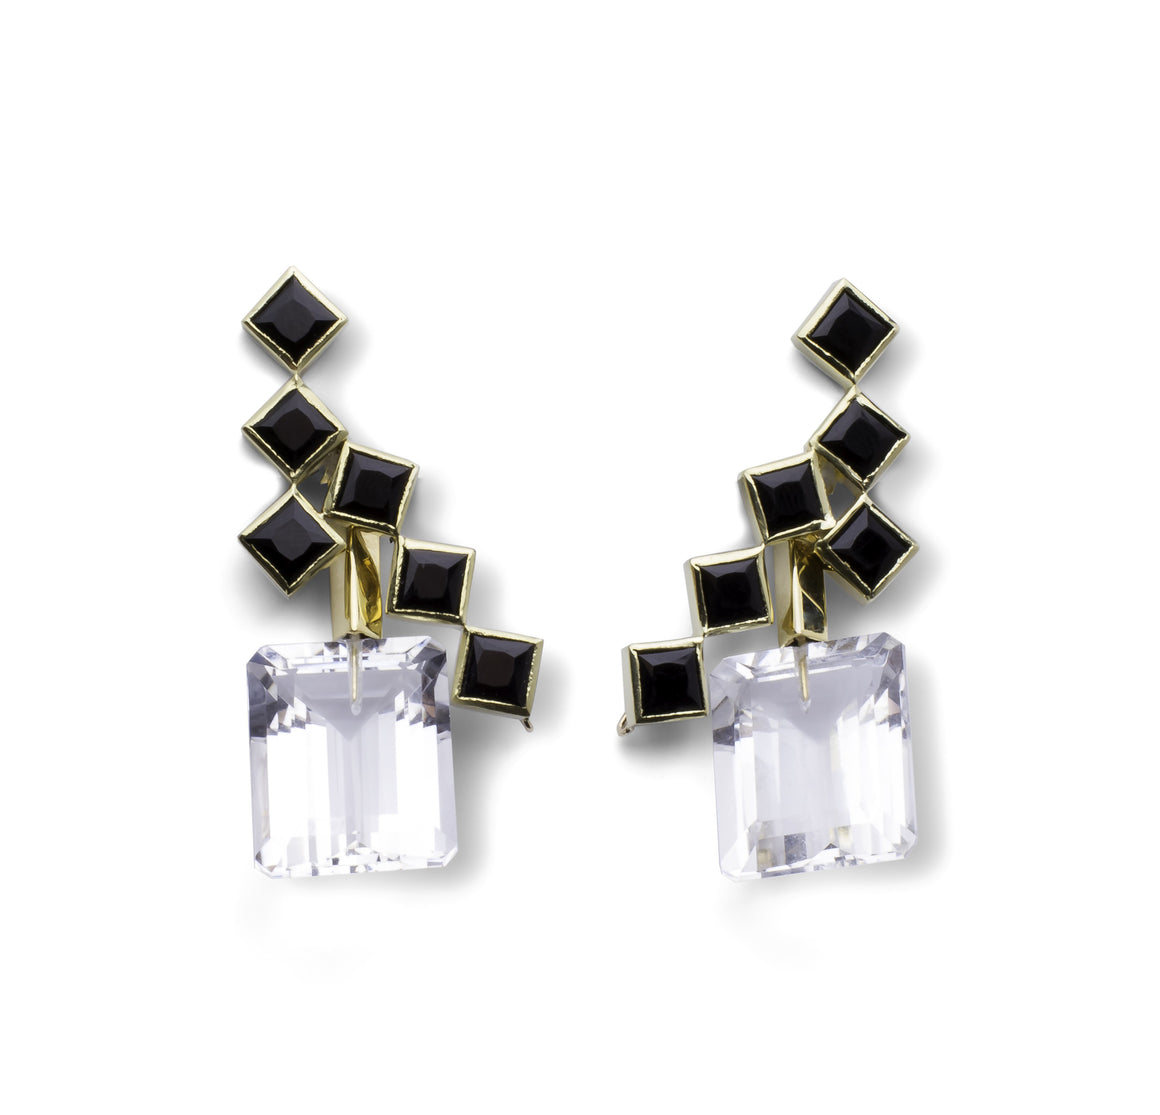 57th Street Earrings